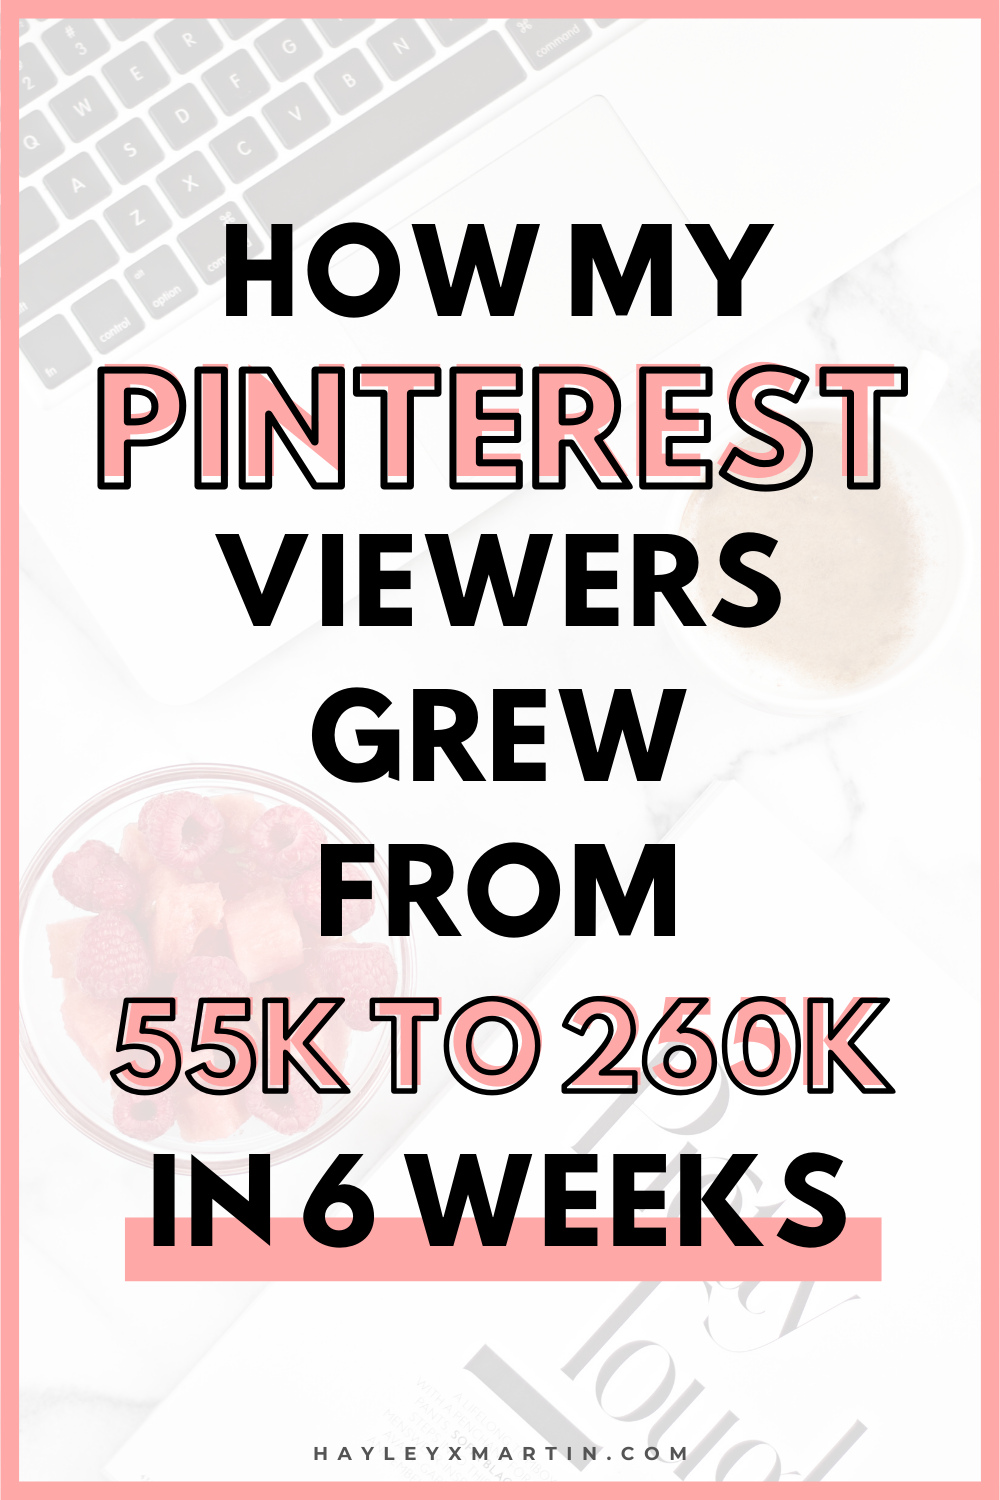 HOW MY PINTEREST VIEWERS GREW FROM 55K TO 260K IN 6 WEEKS | HAYLEYXMARTIN